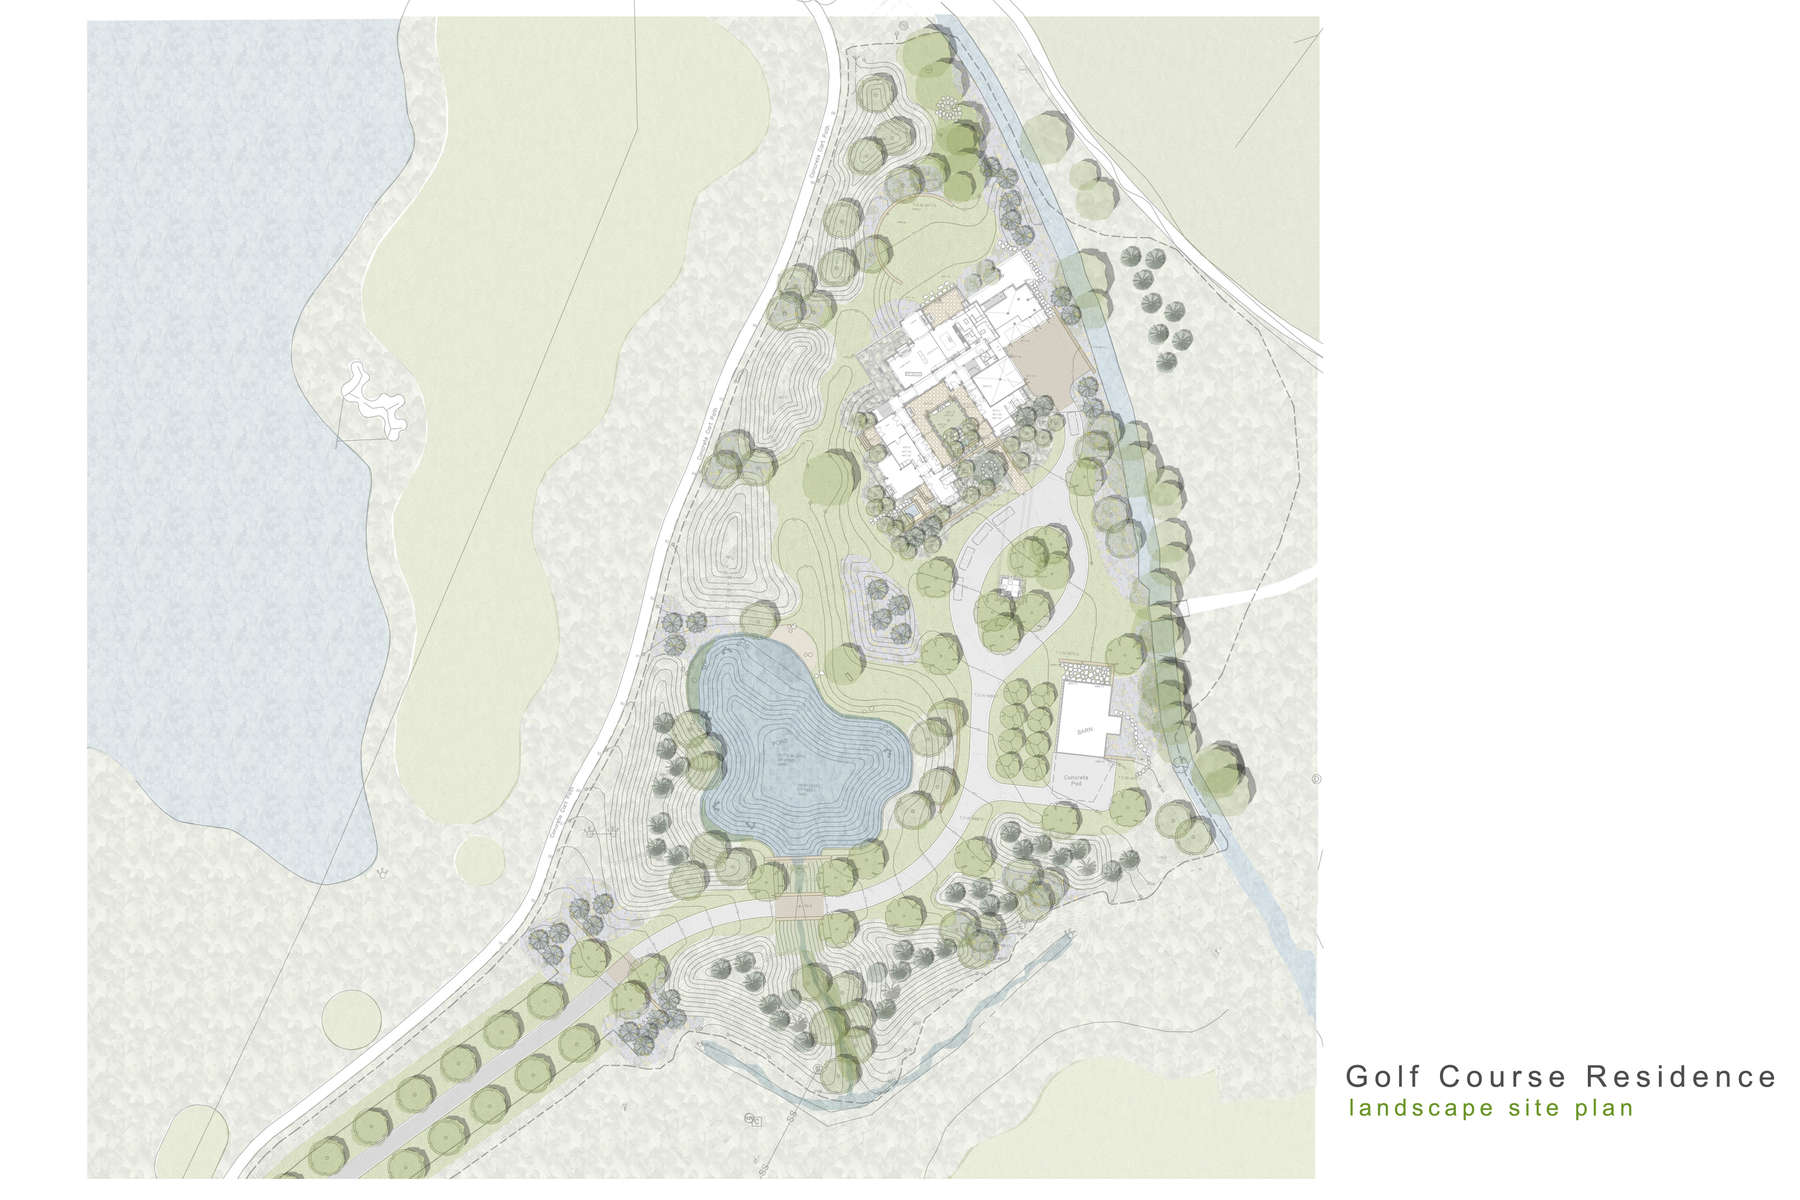 Golf Course Residence